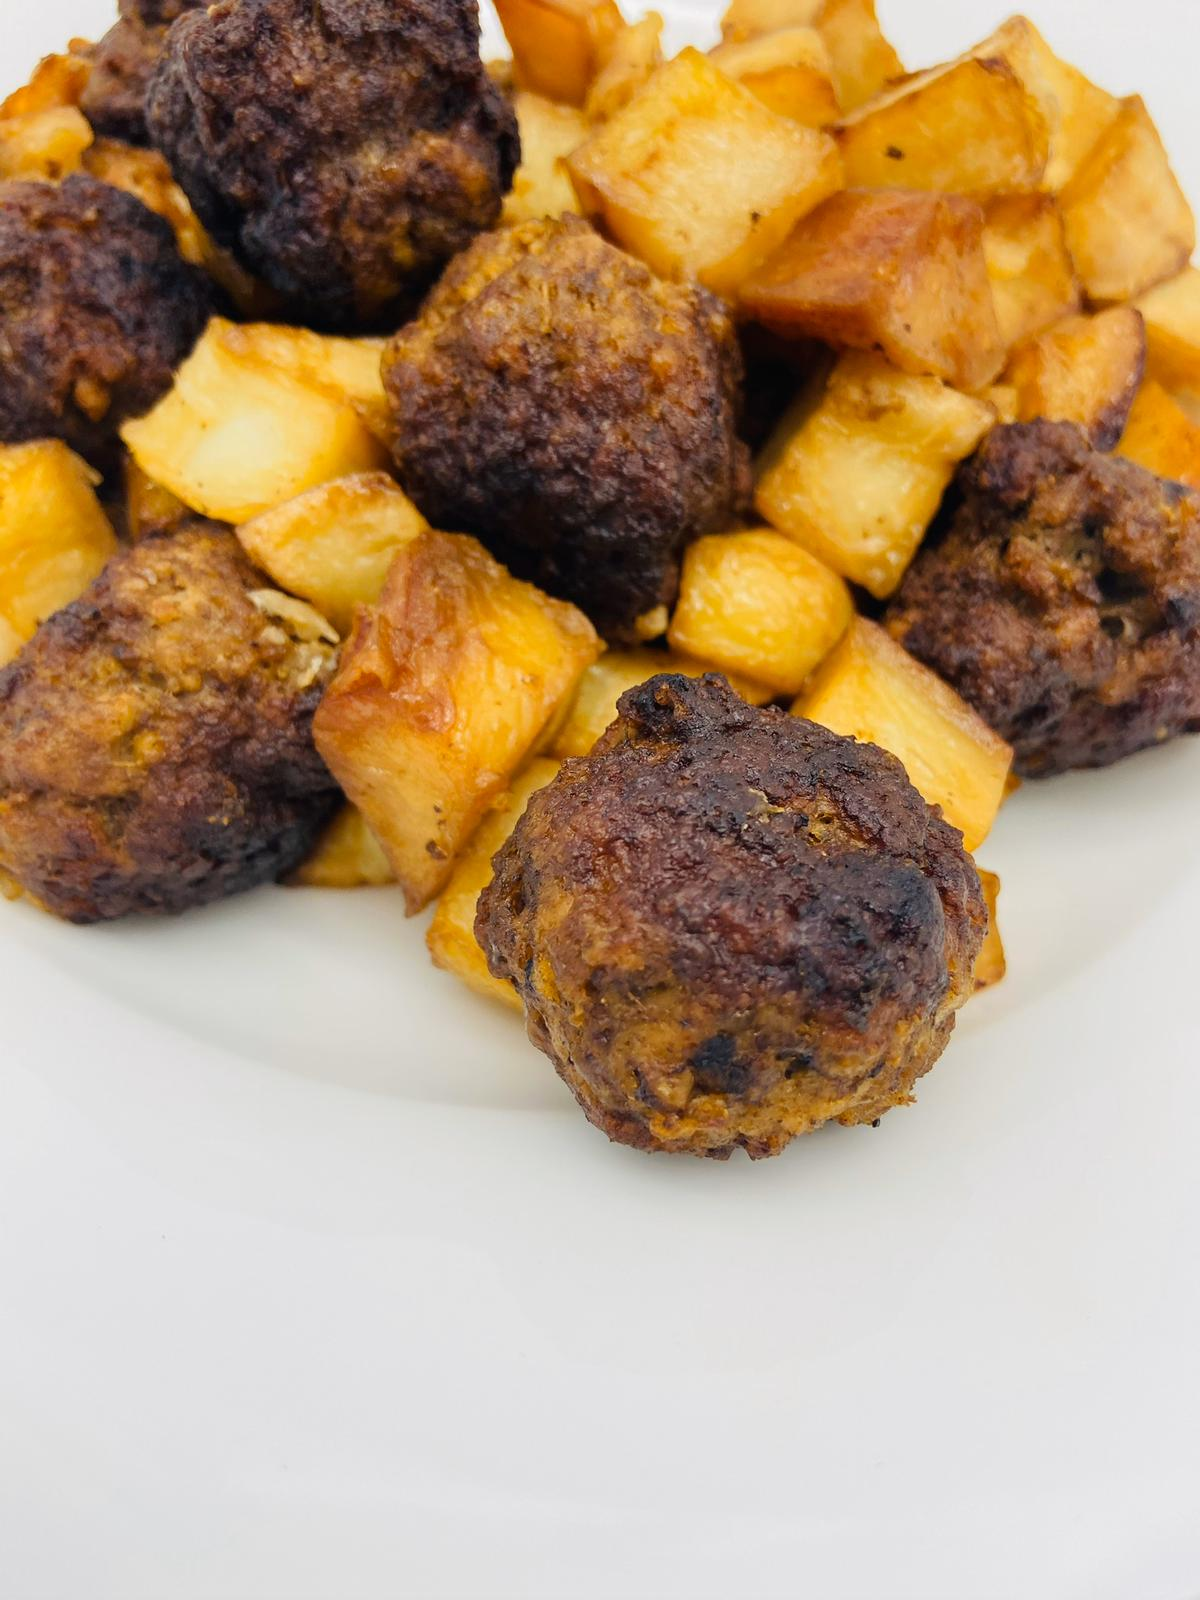 SAVTA'S PESACH MEATBALLS AND POTATOES